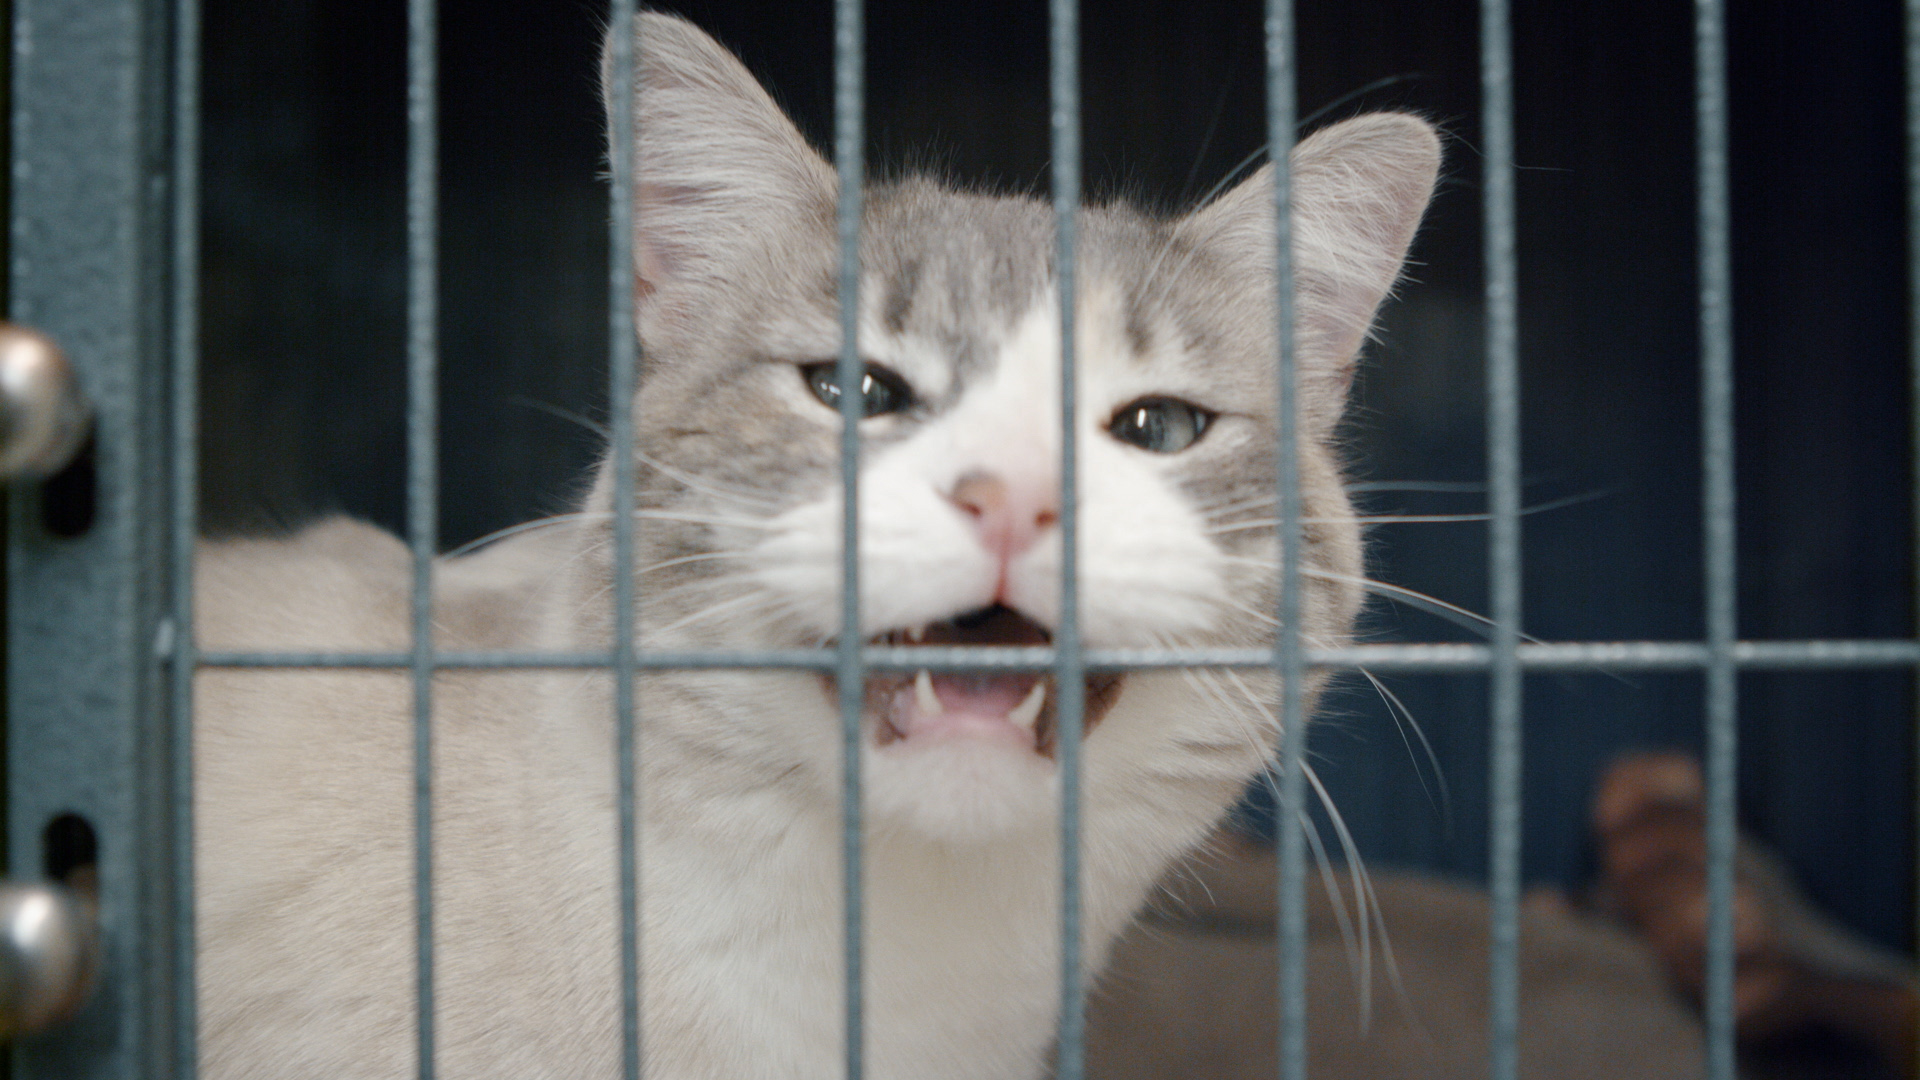 - We can create lasting change and save hundreds of lives by bringing in animals that would otherwise be killed in overcrowded shelters and connect them with forever homes.